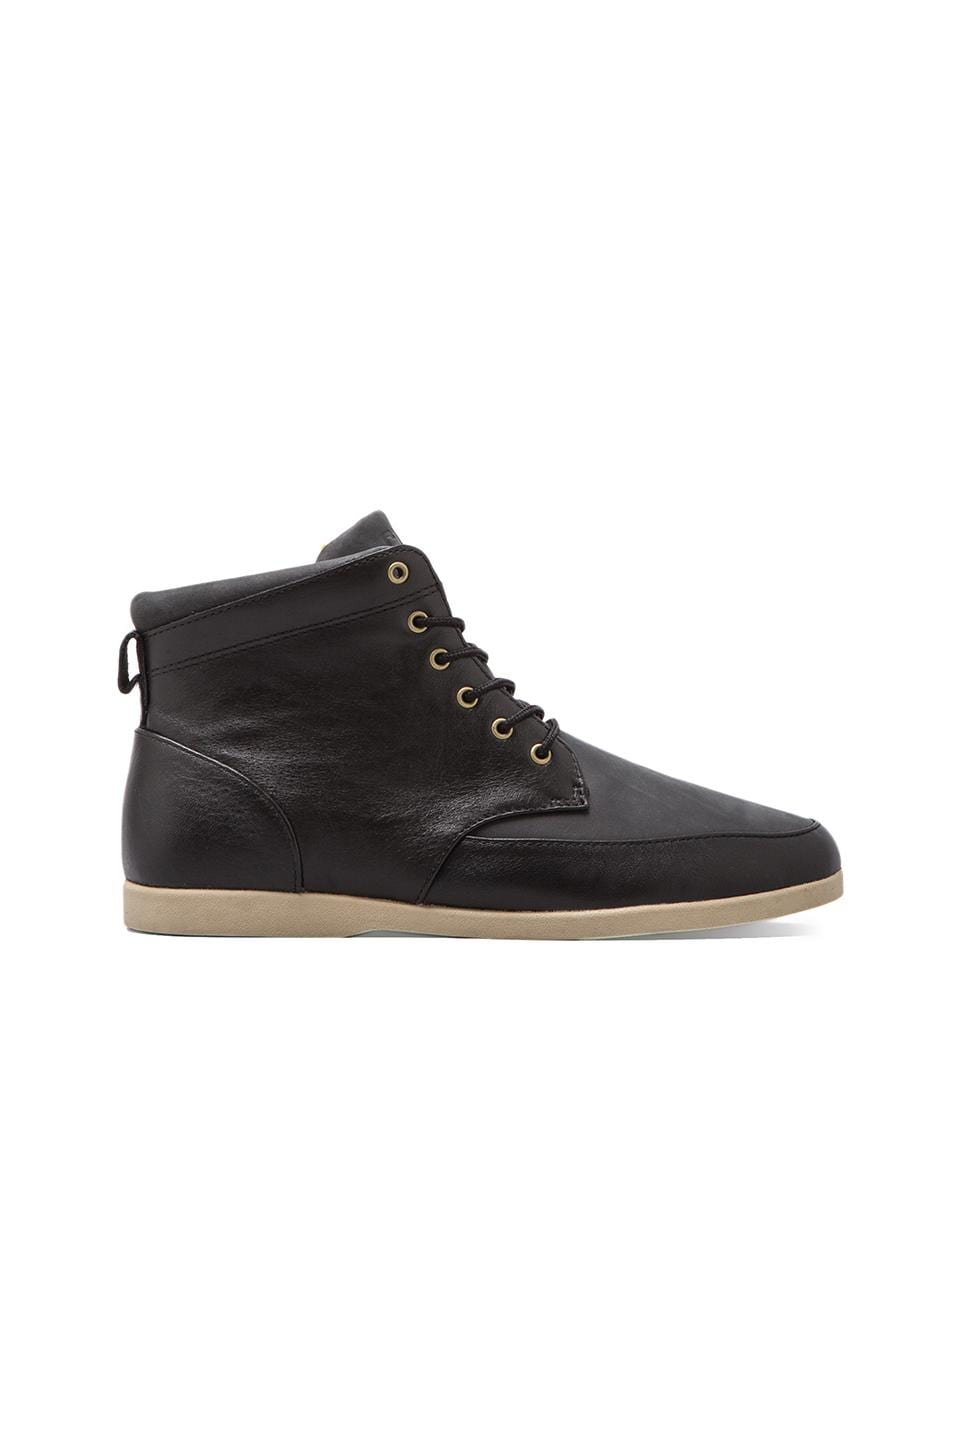 Clae Hamilton in Black Leather